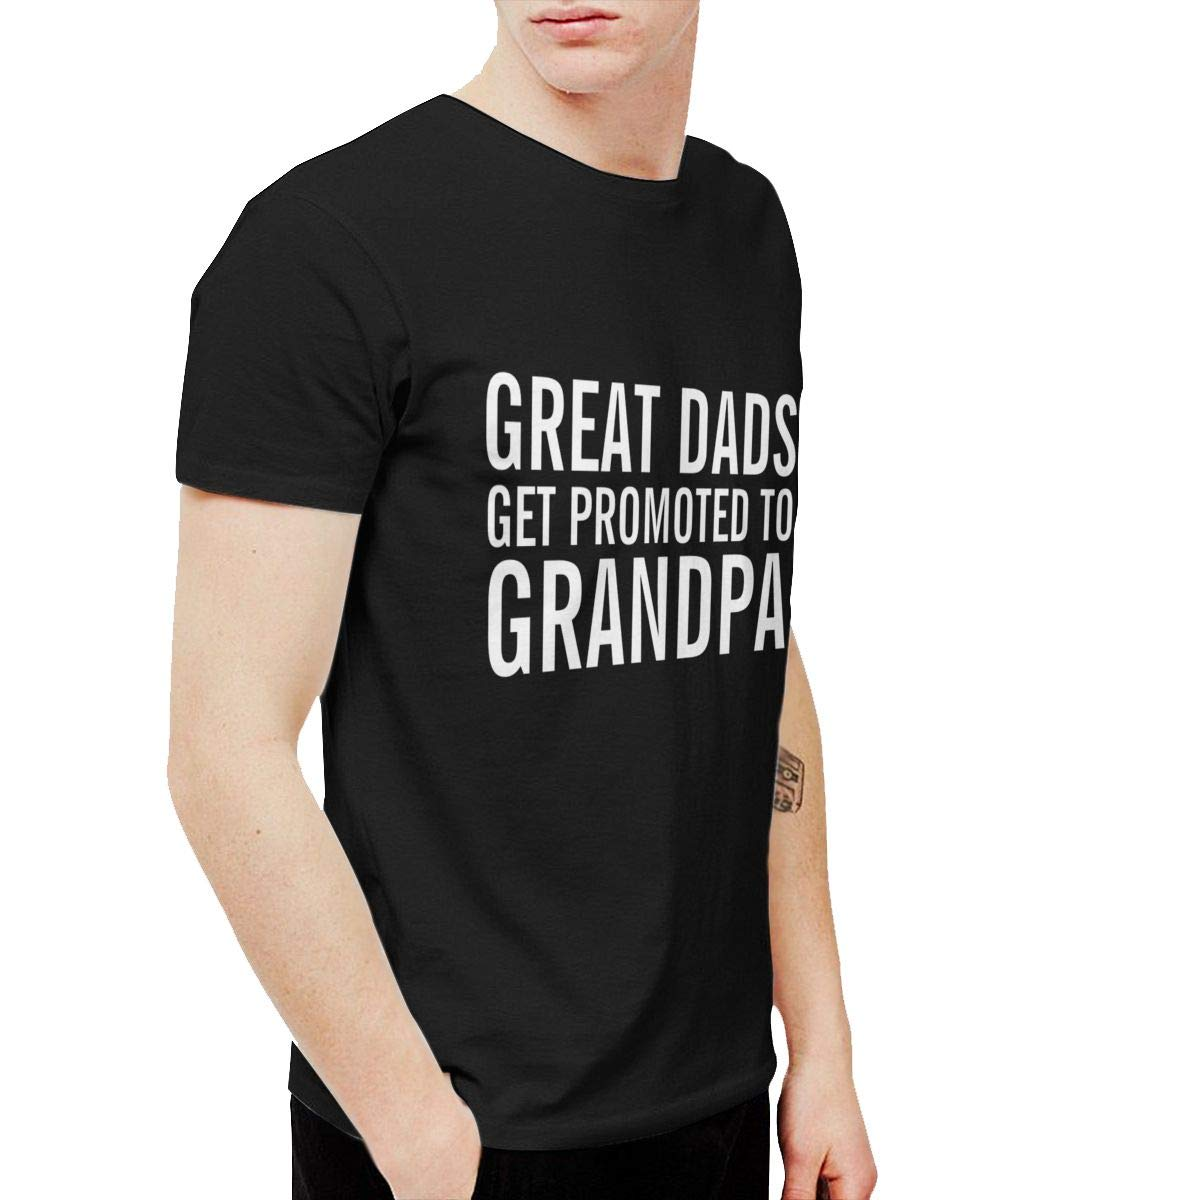 Shuaihong Great Dads Get Promoted To Grandpa Men Leisure Tshirt Black